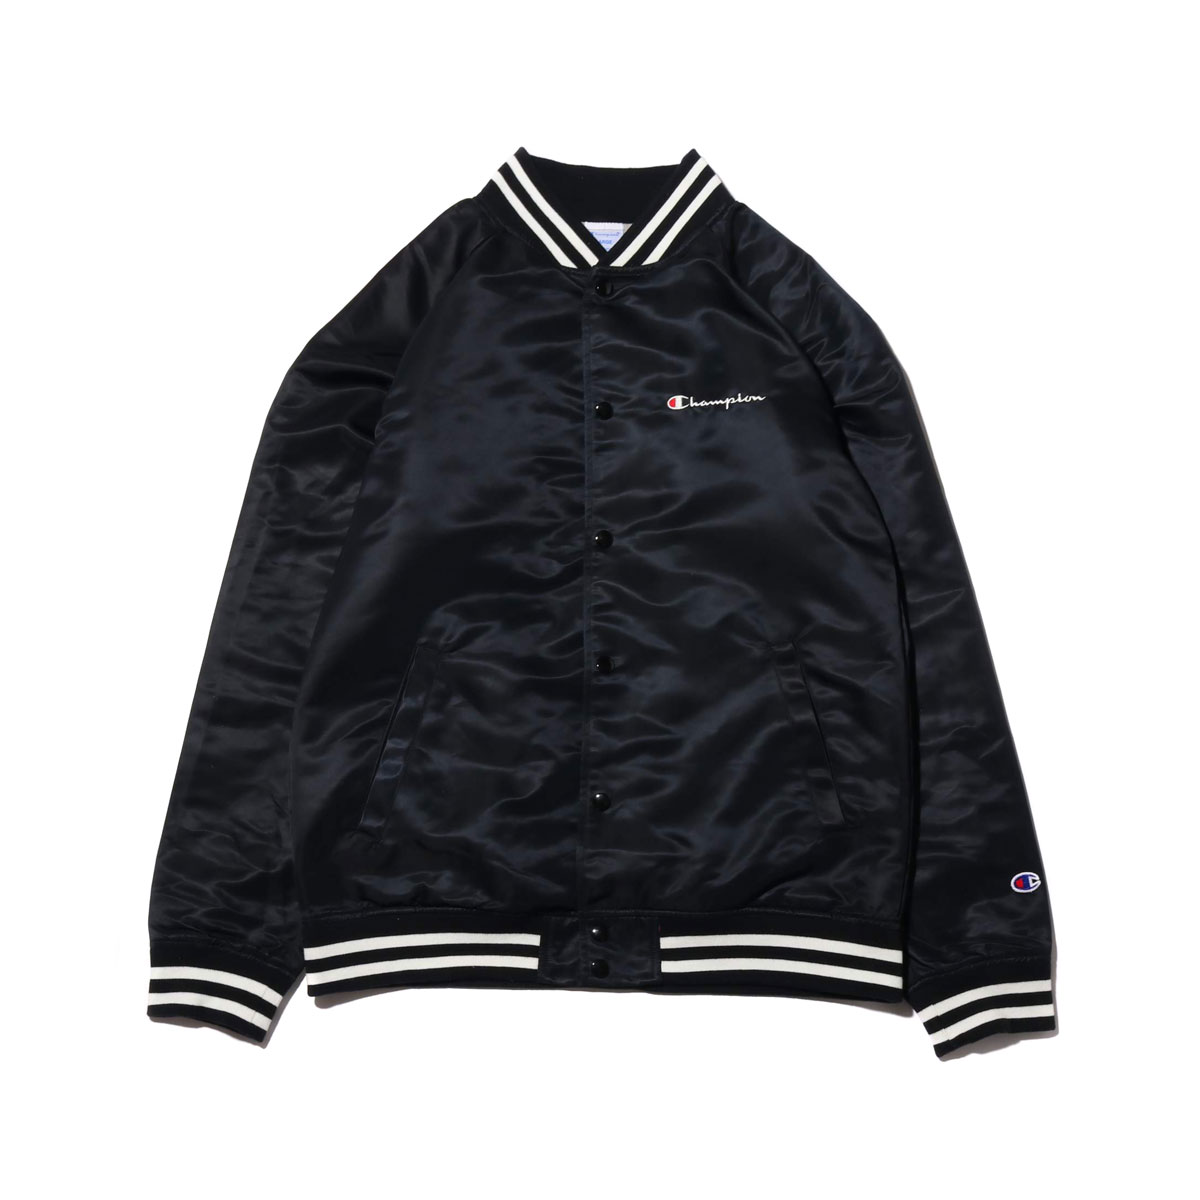 ATMOS Coats & Jackets Men's Clothing include sold out